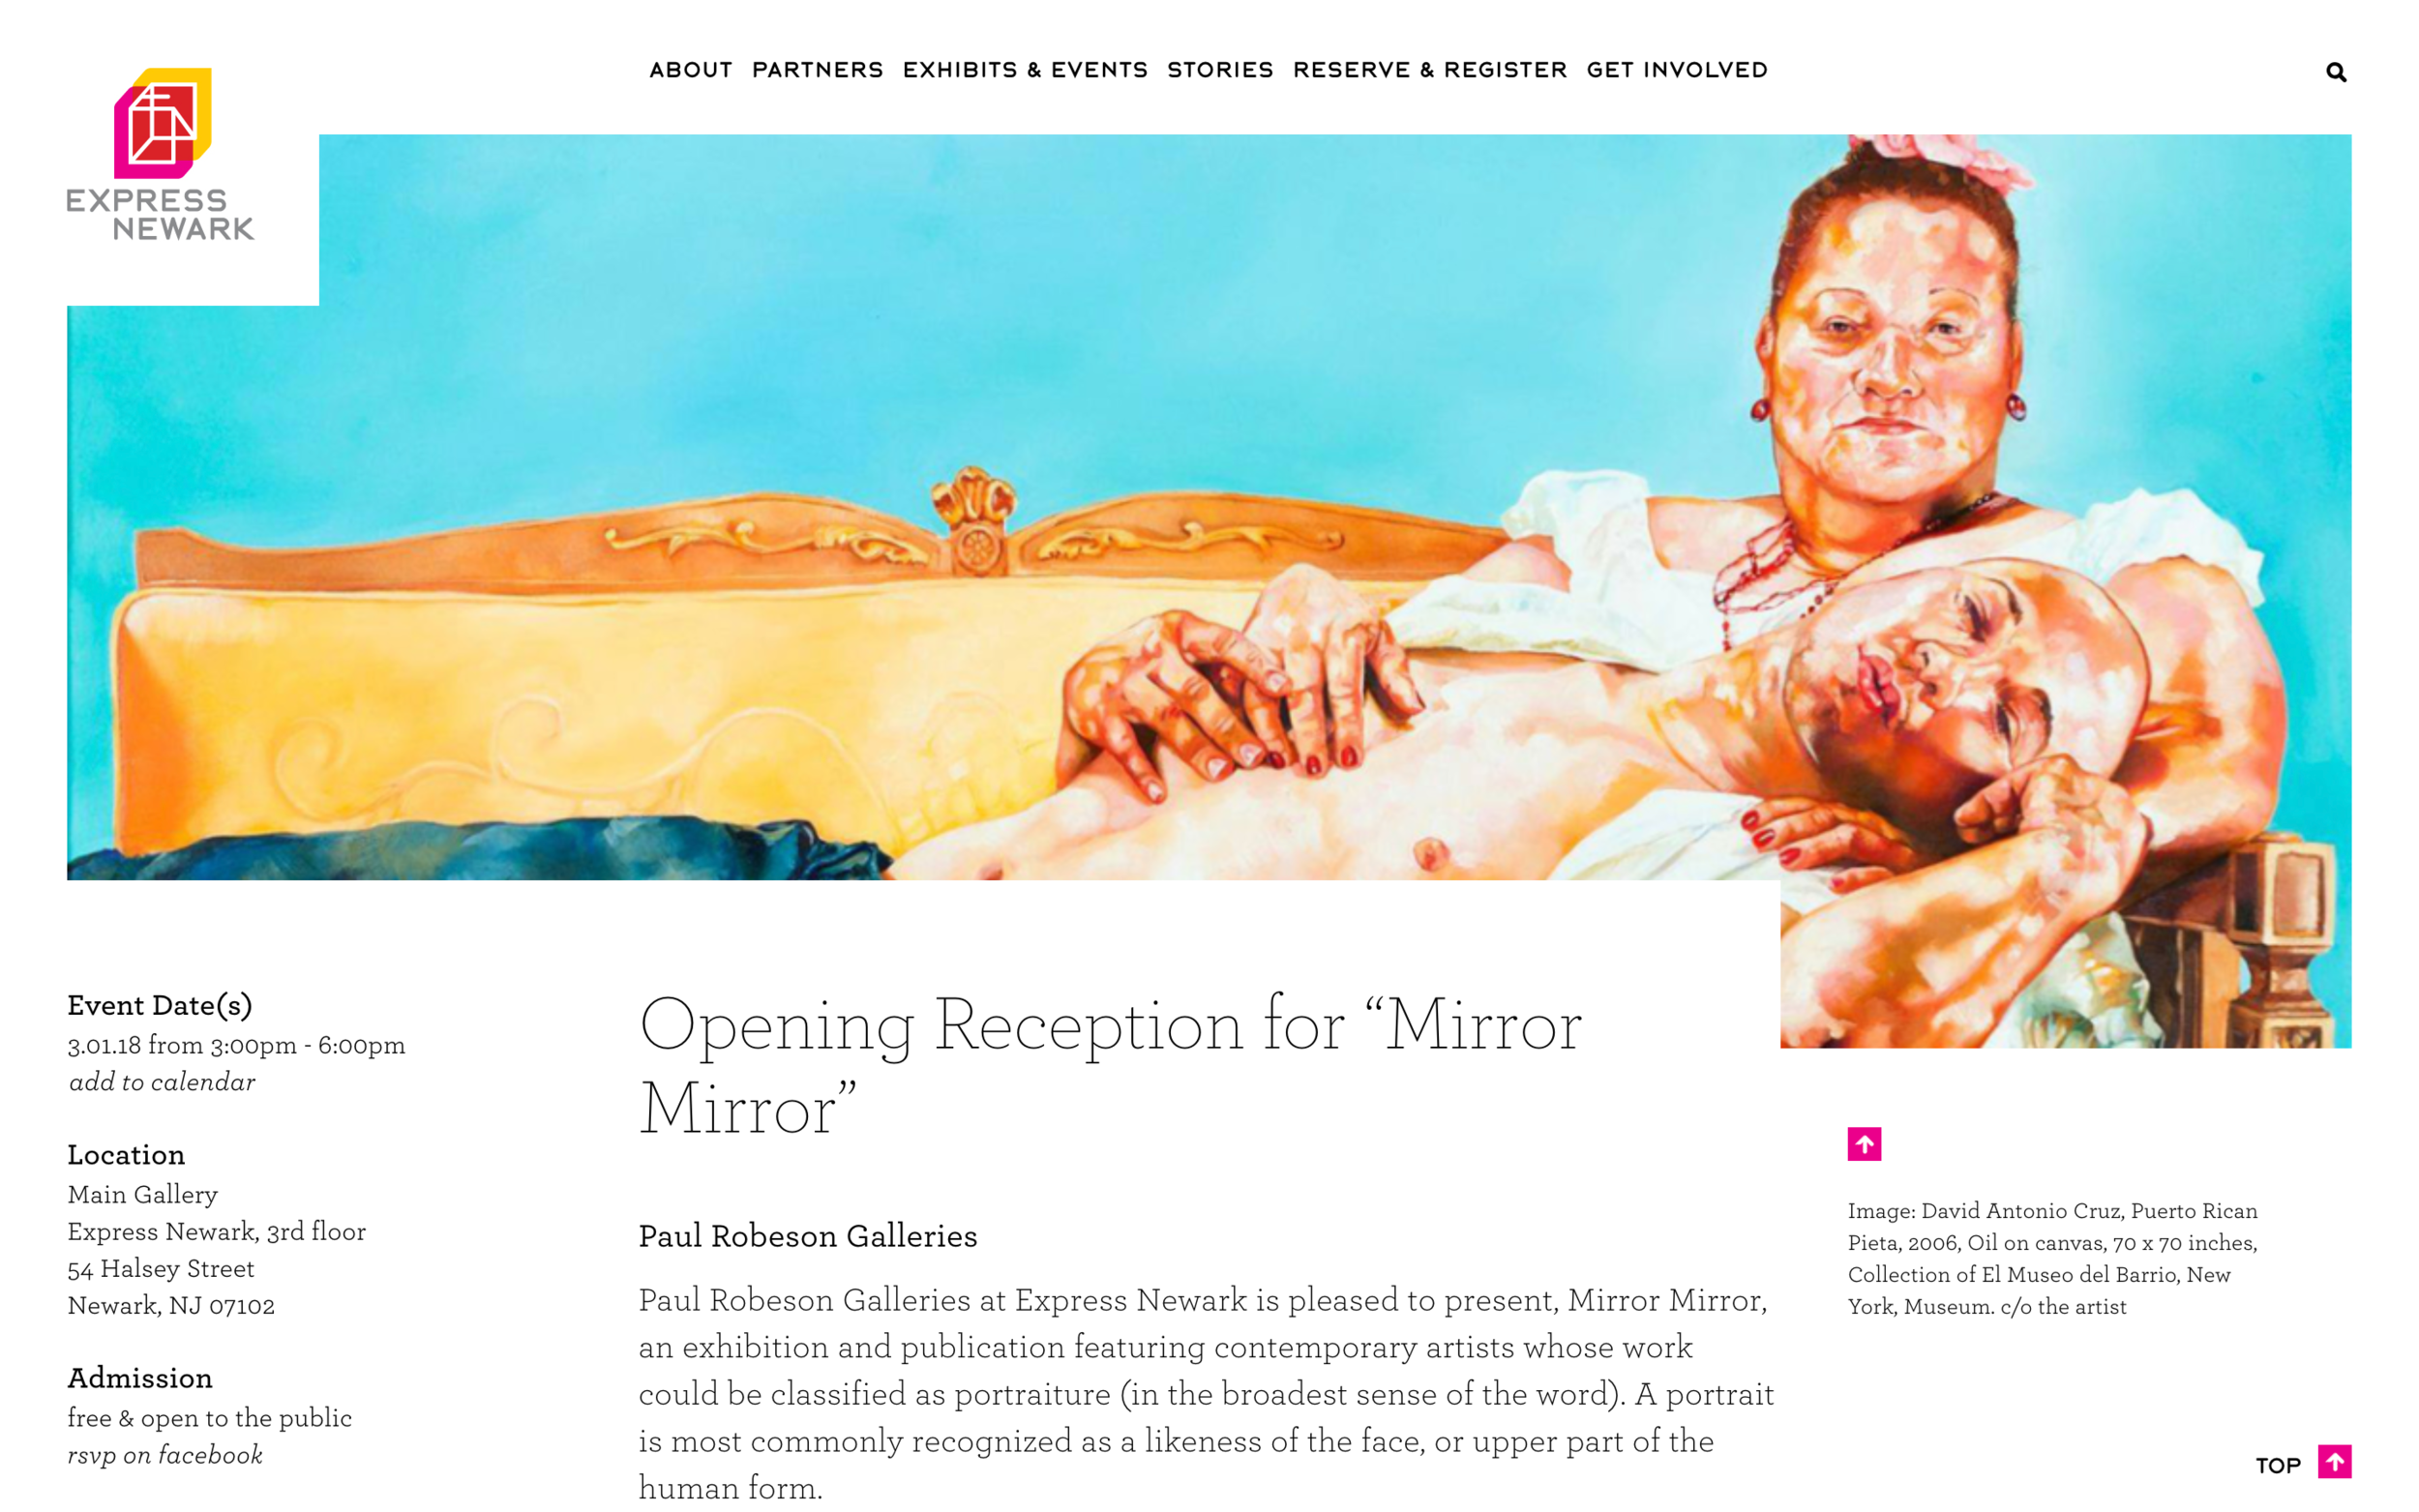 www.expressnewark.org_events_mirror-mirror-opening-reception_.png